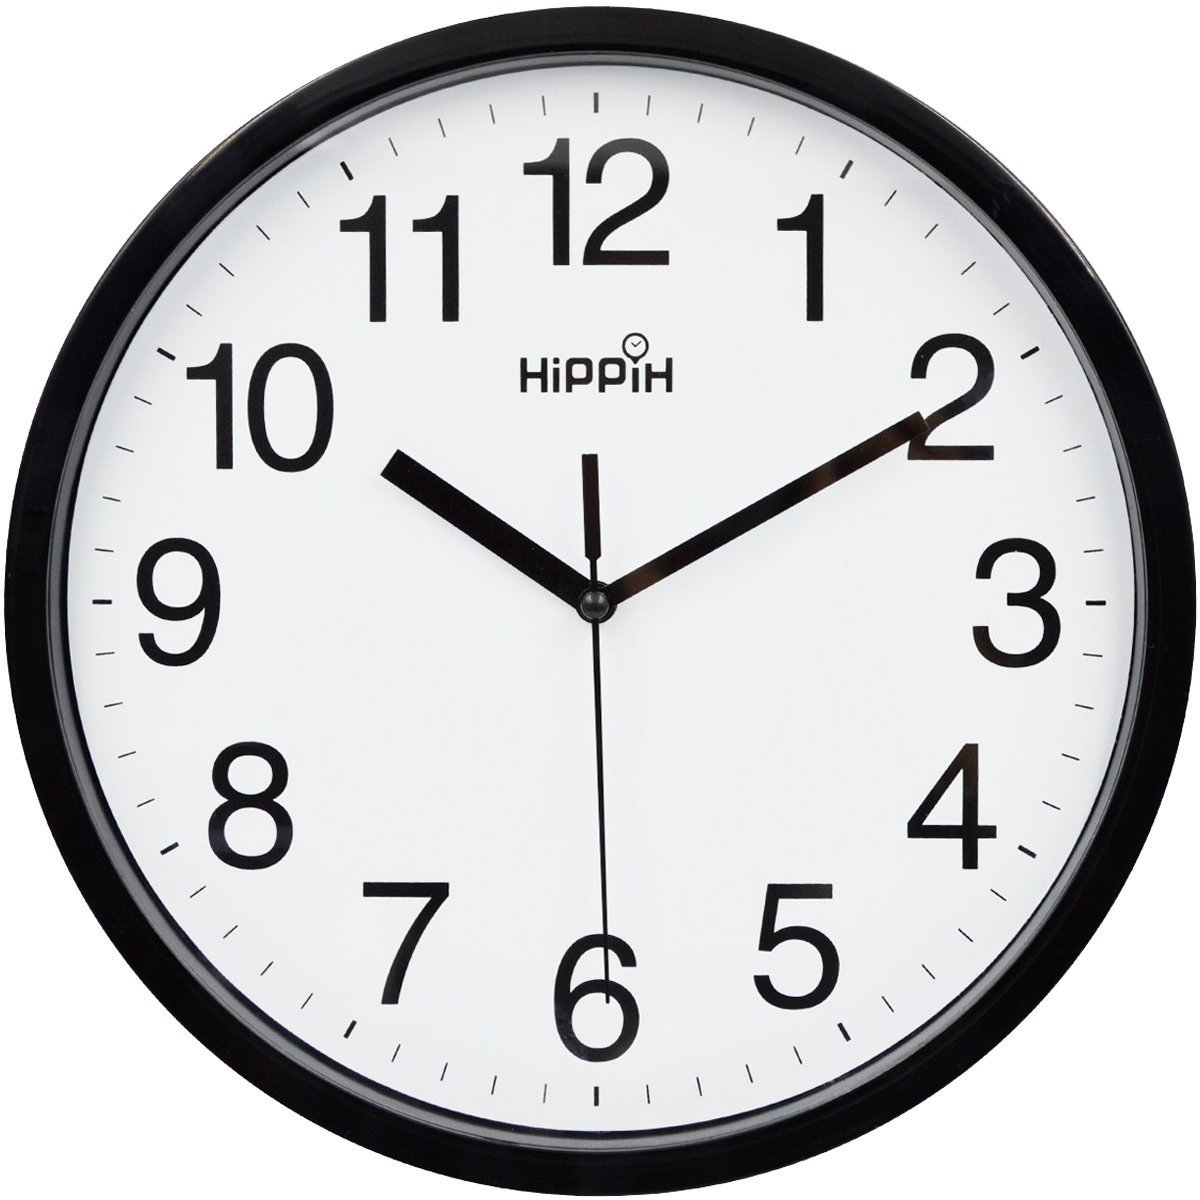 Shop amazon wall clocks hippih 10 silent quartz decorative wall clock non ticking digitalblack amipublicfo Gallery